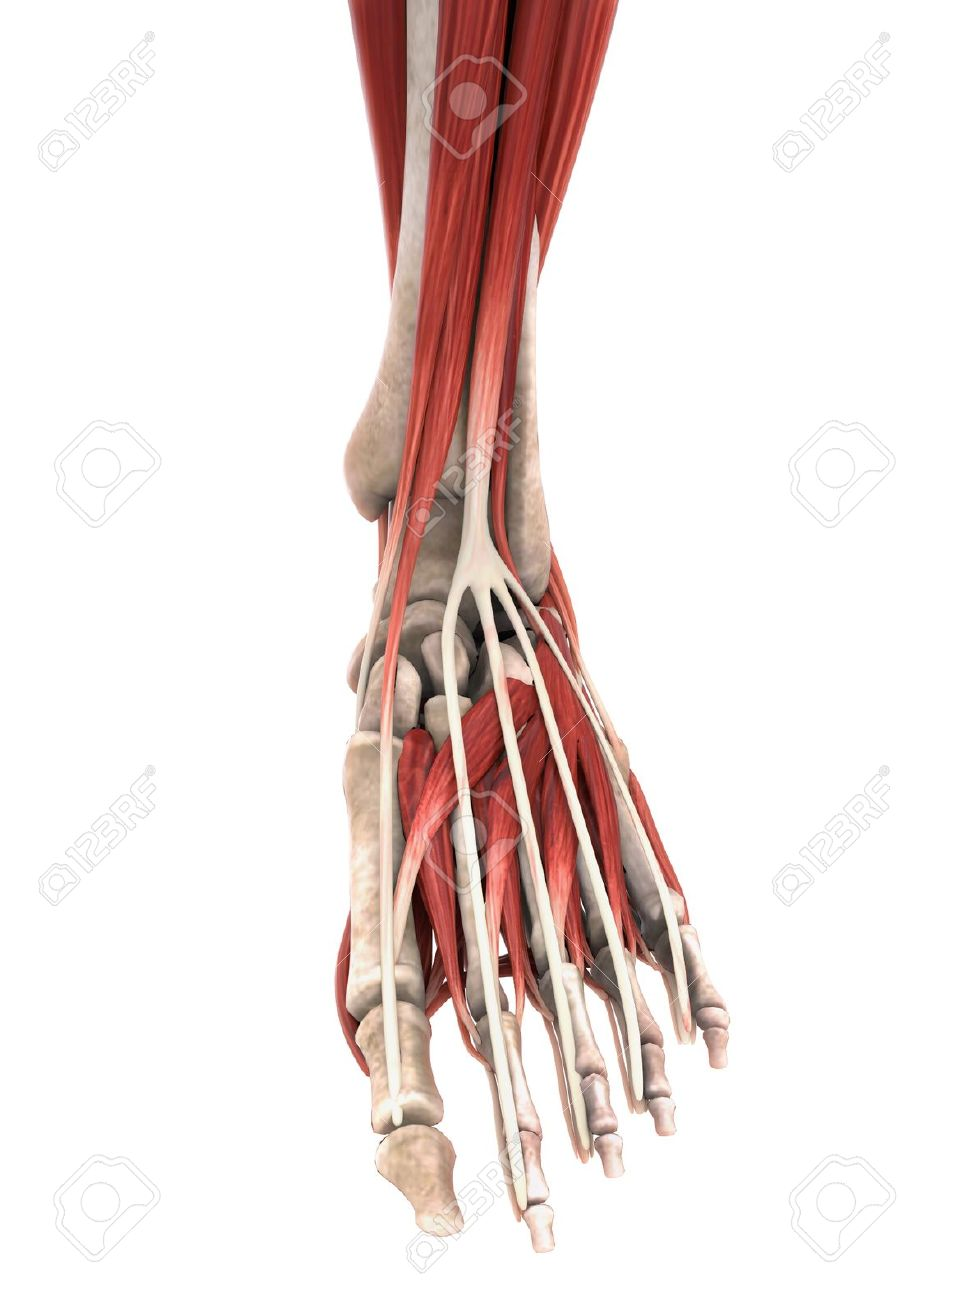 Human Foot Muscles Anatomy Stock Photo Picture And Royalty Free